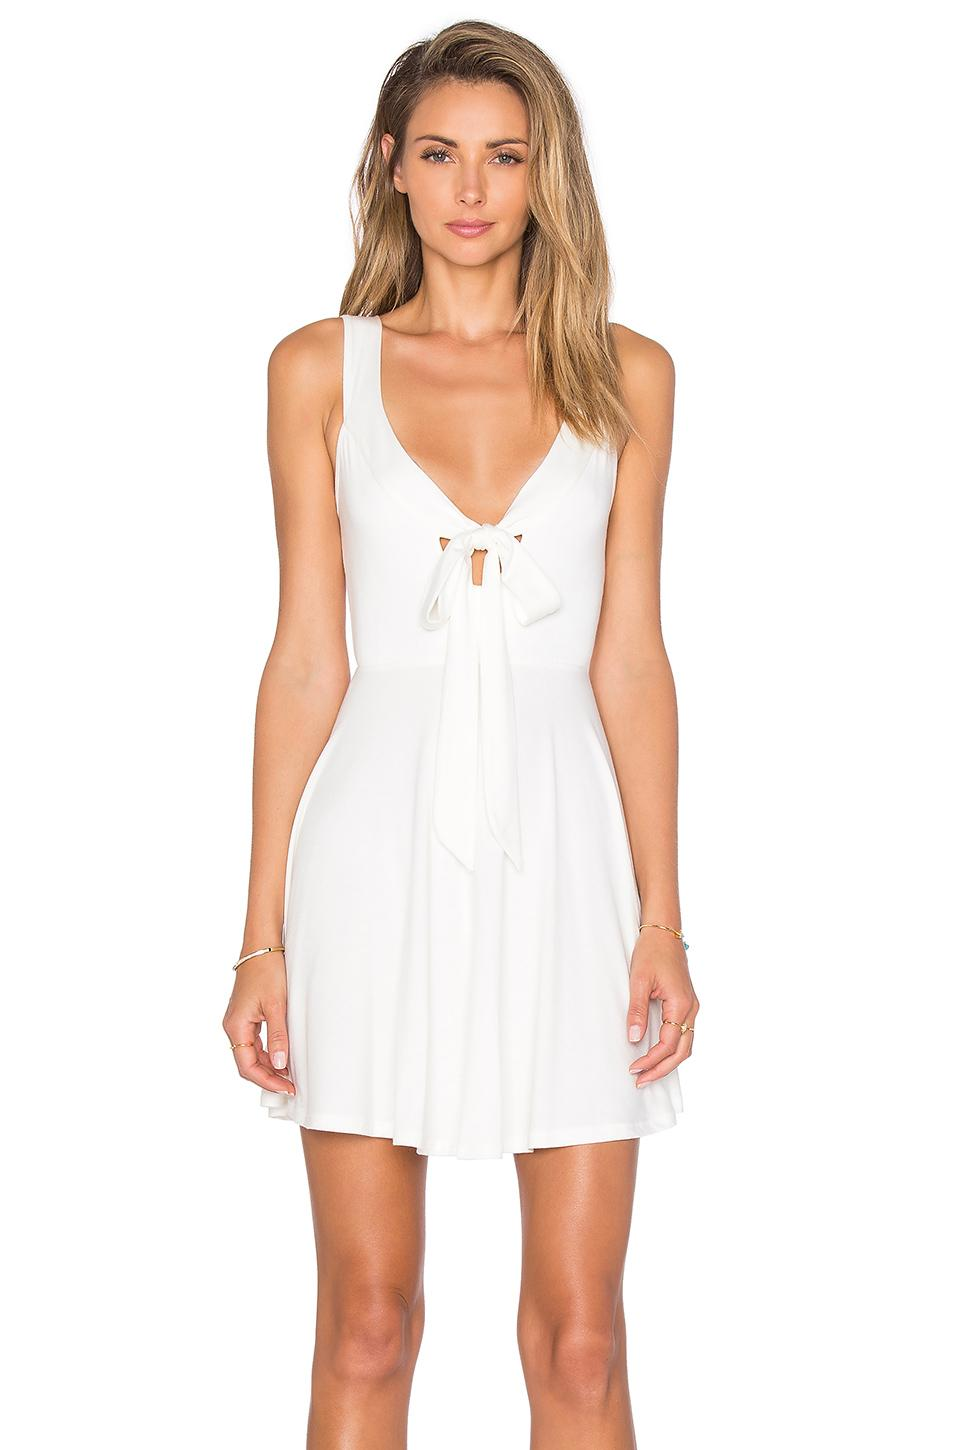 Lyst - Rachel pally Ossy Self-Tie Mini Dress in White